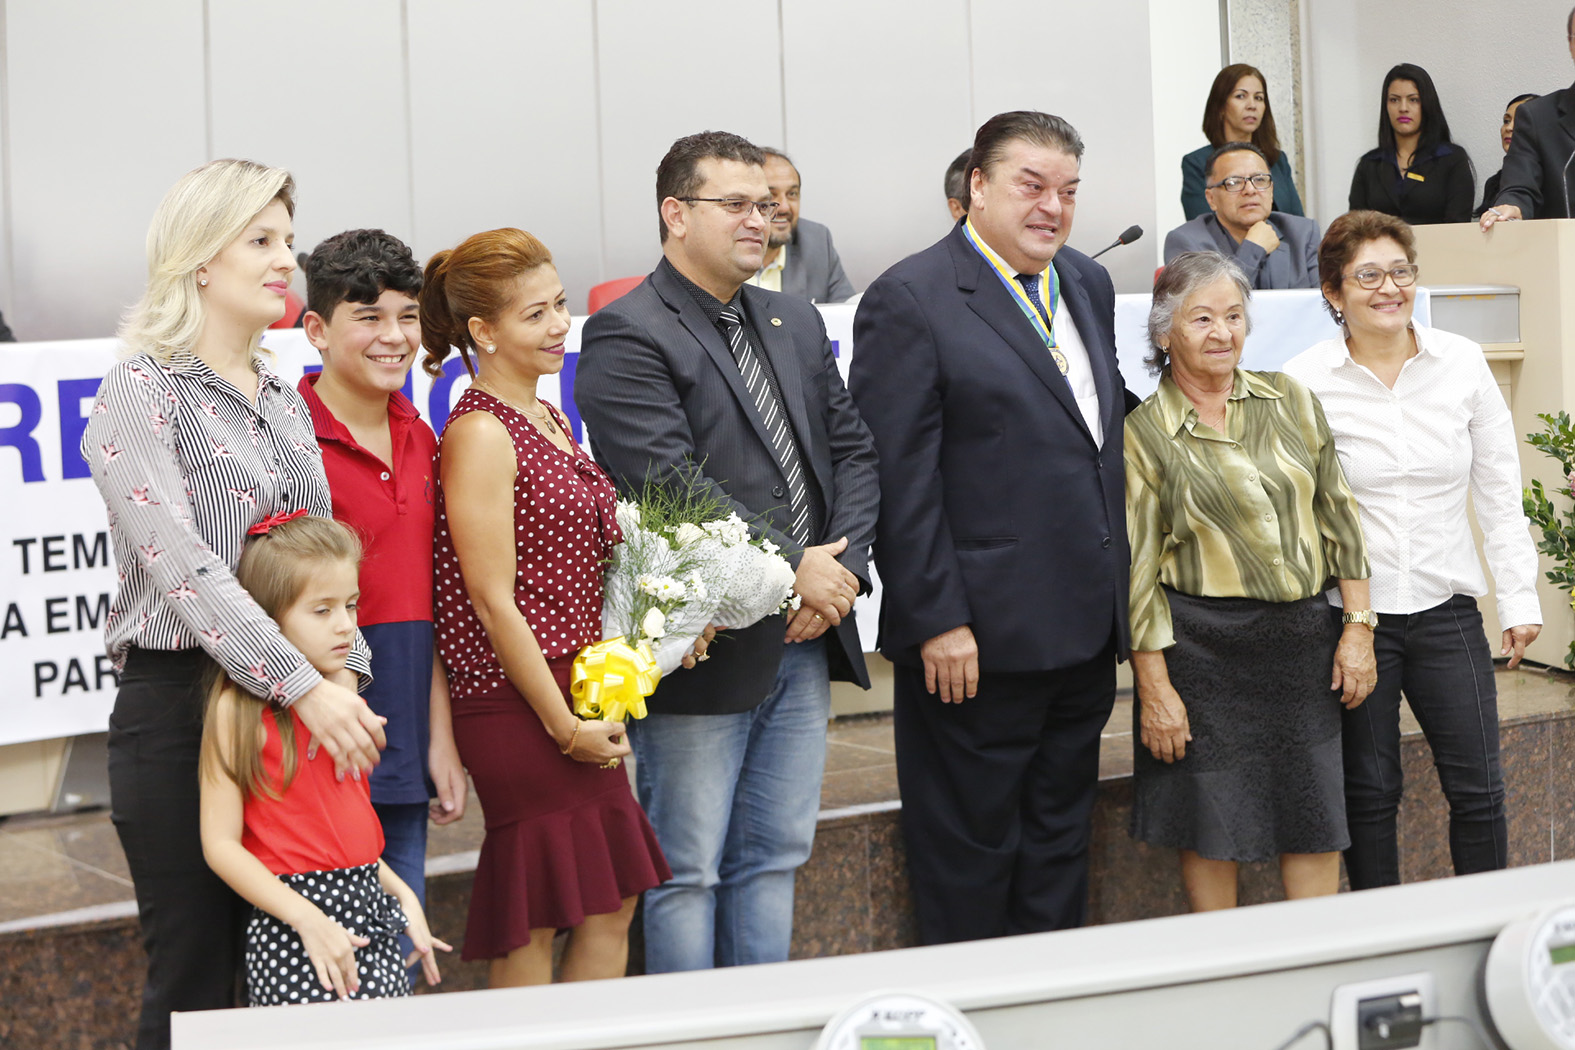 Secret_rio Williames Pimentel _ homenageado na Assembleia Legislativa-17Ab17-Jos_ Hilde-Decom-ALE-RO (12)